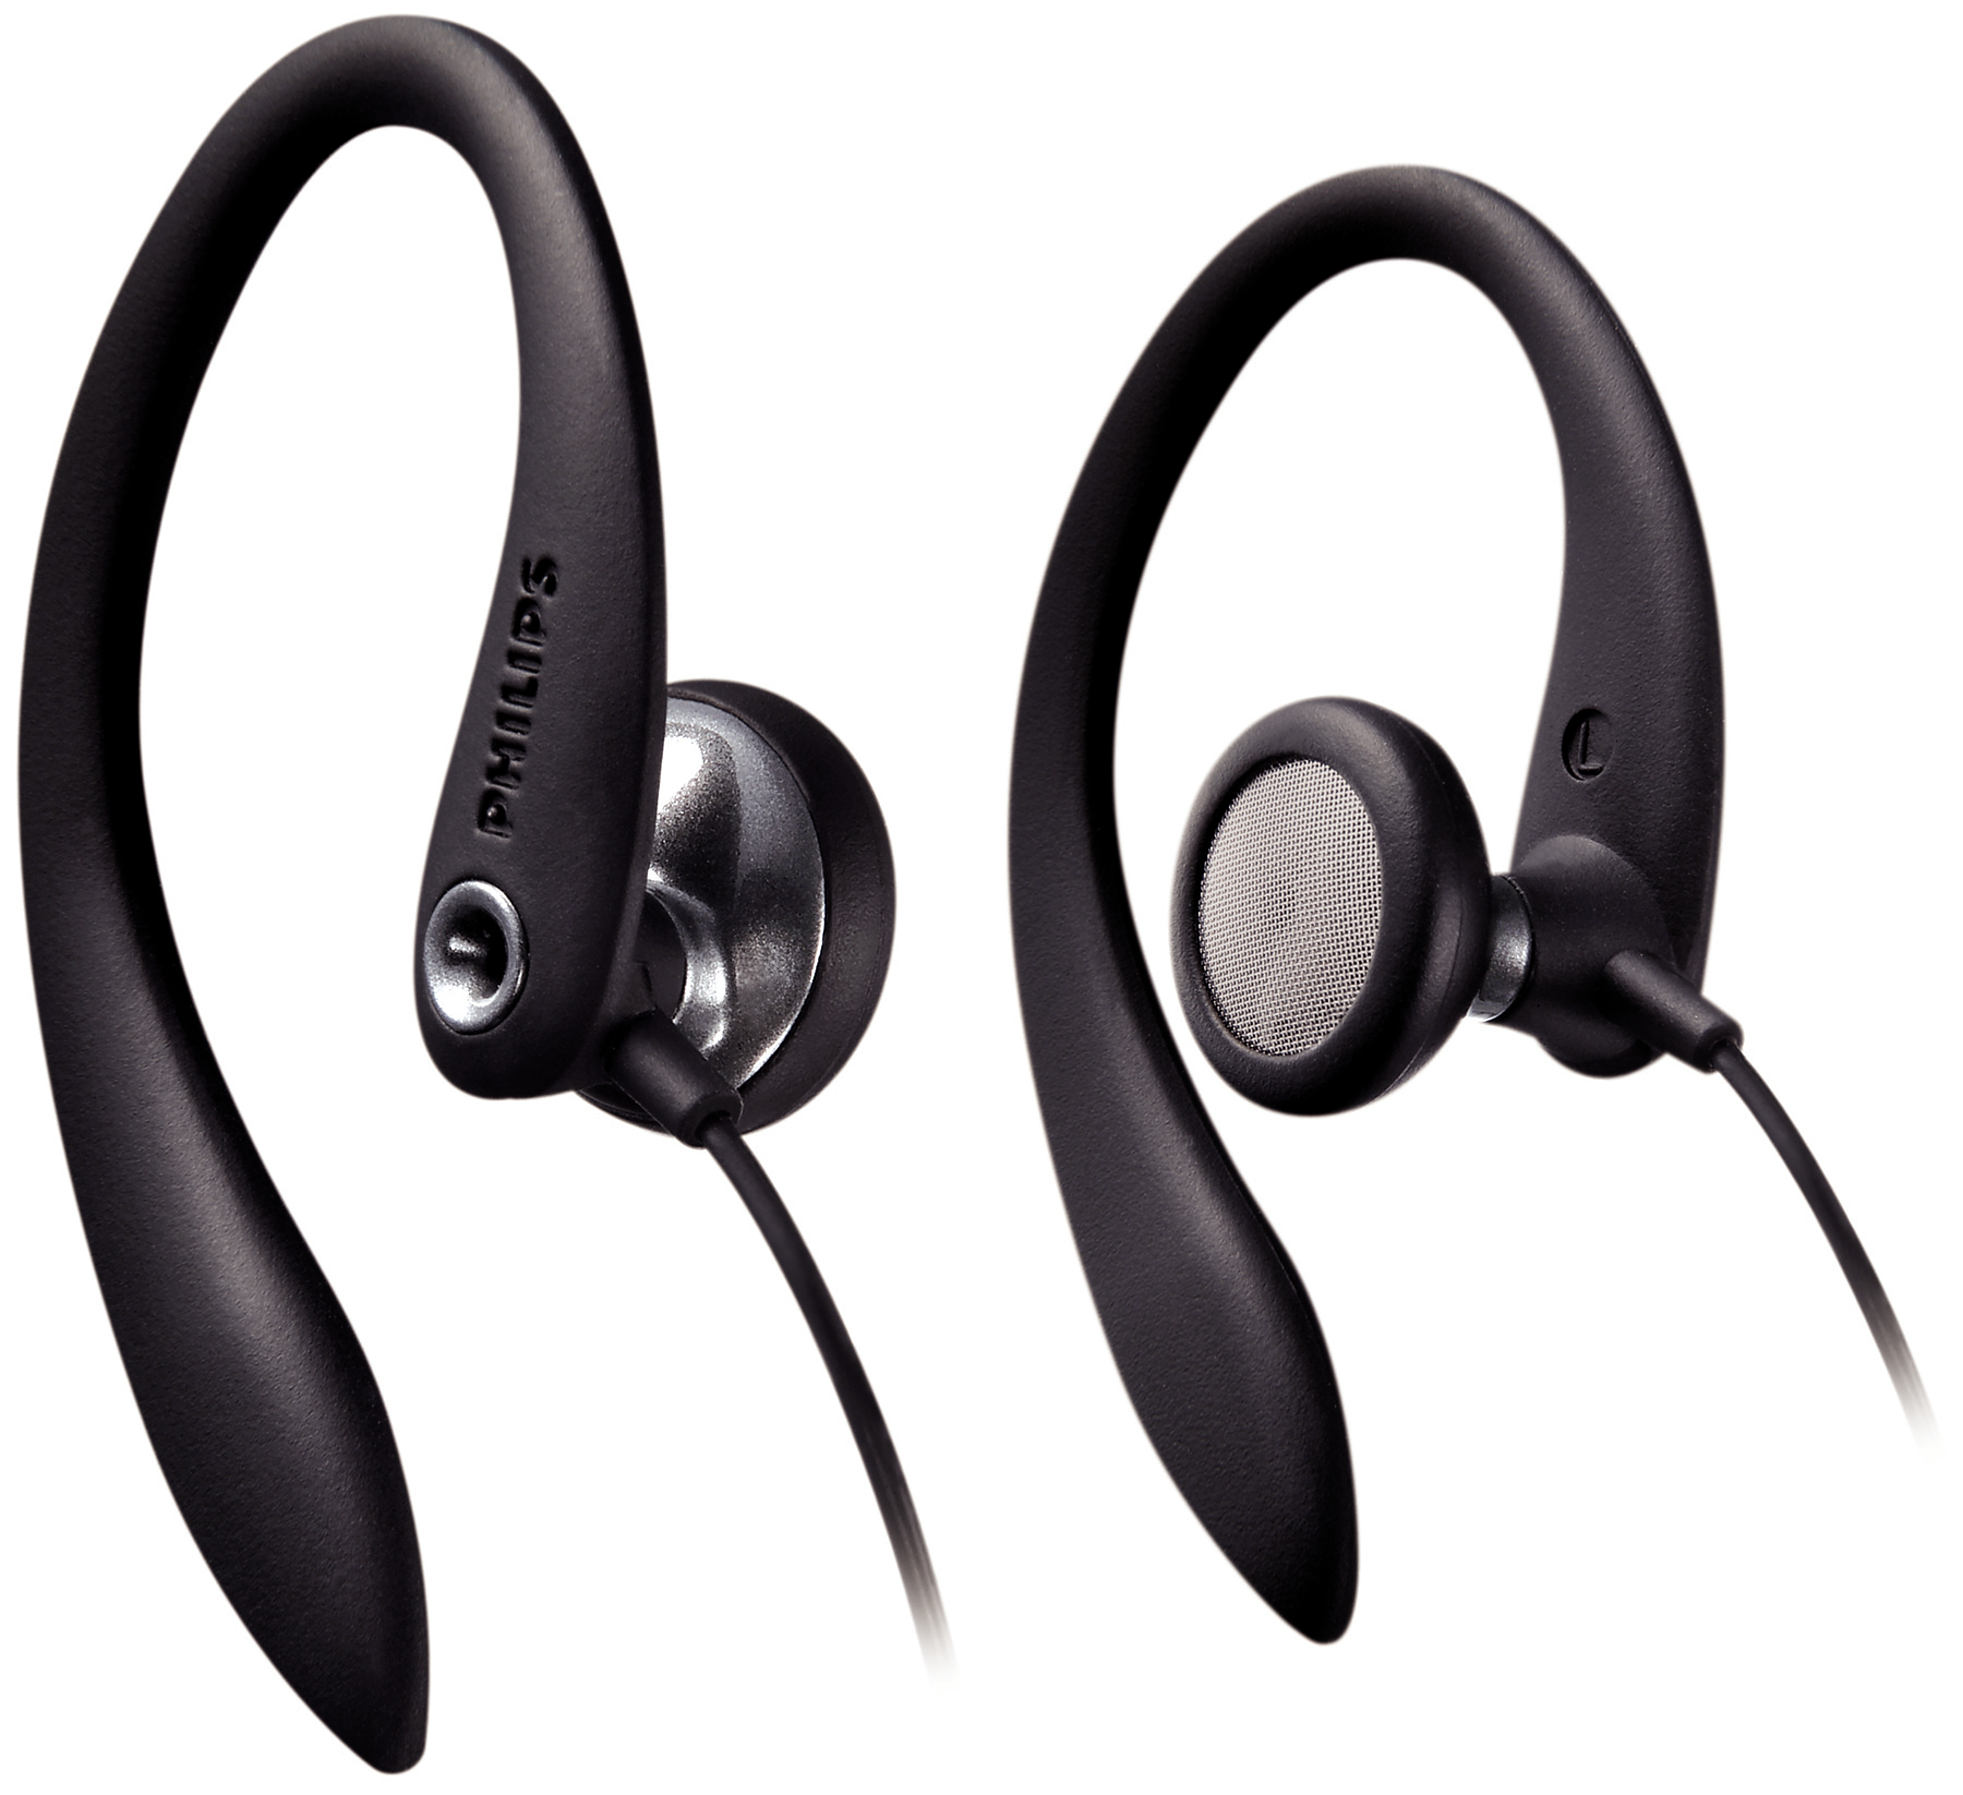 Philips SHS3200 Earhook Headphones - Black (New Open Box)